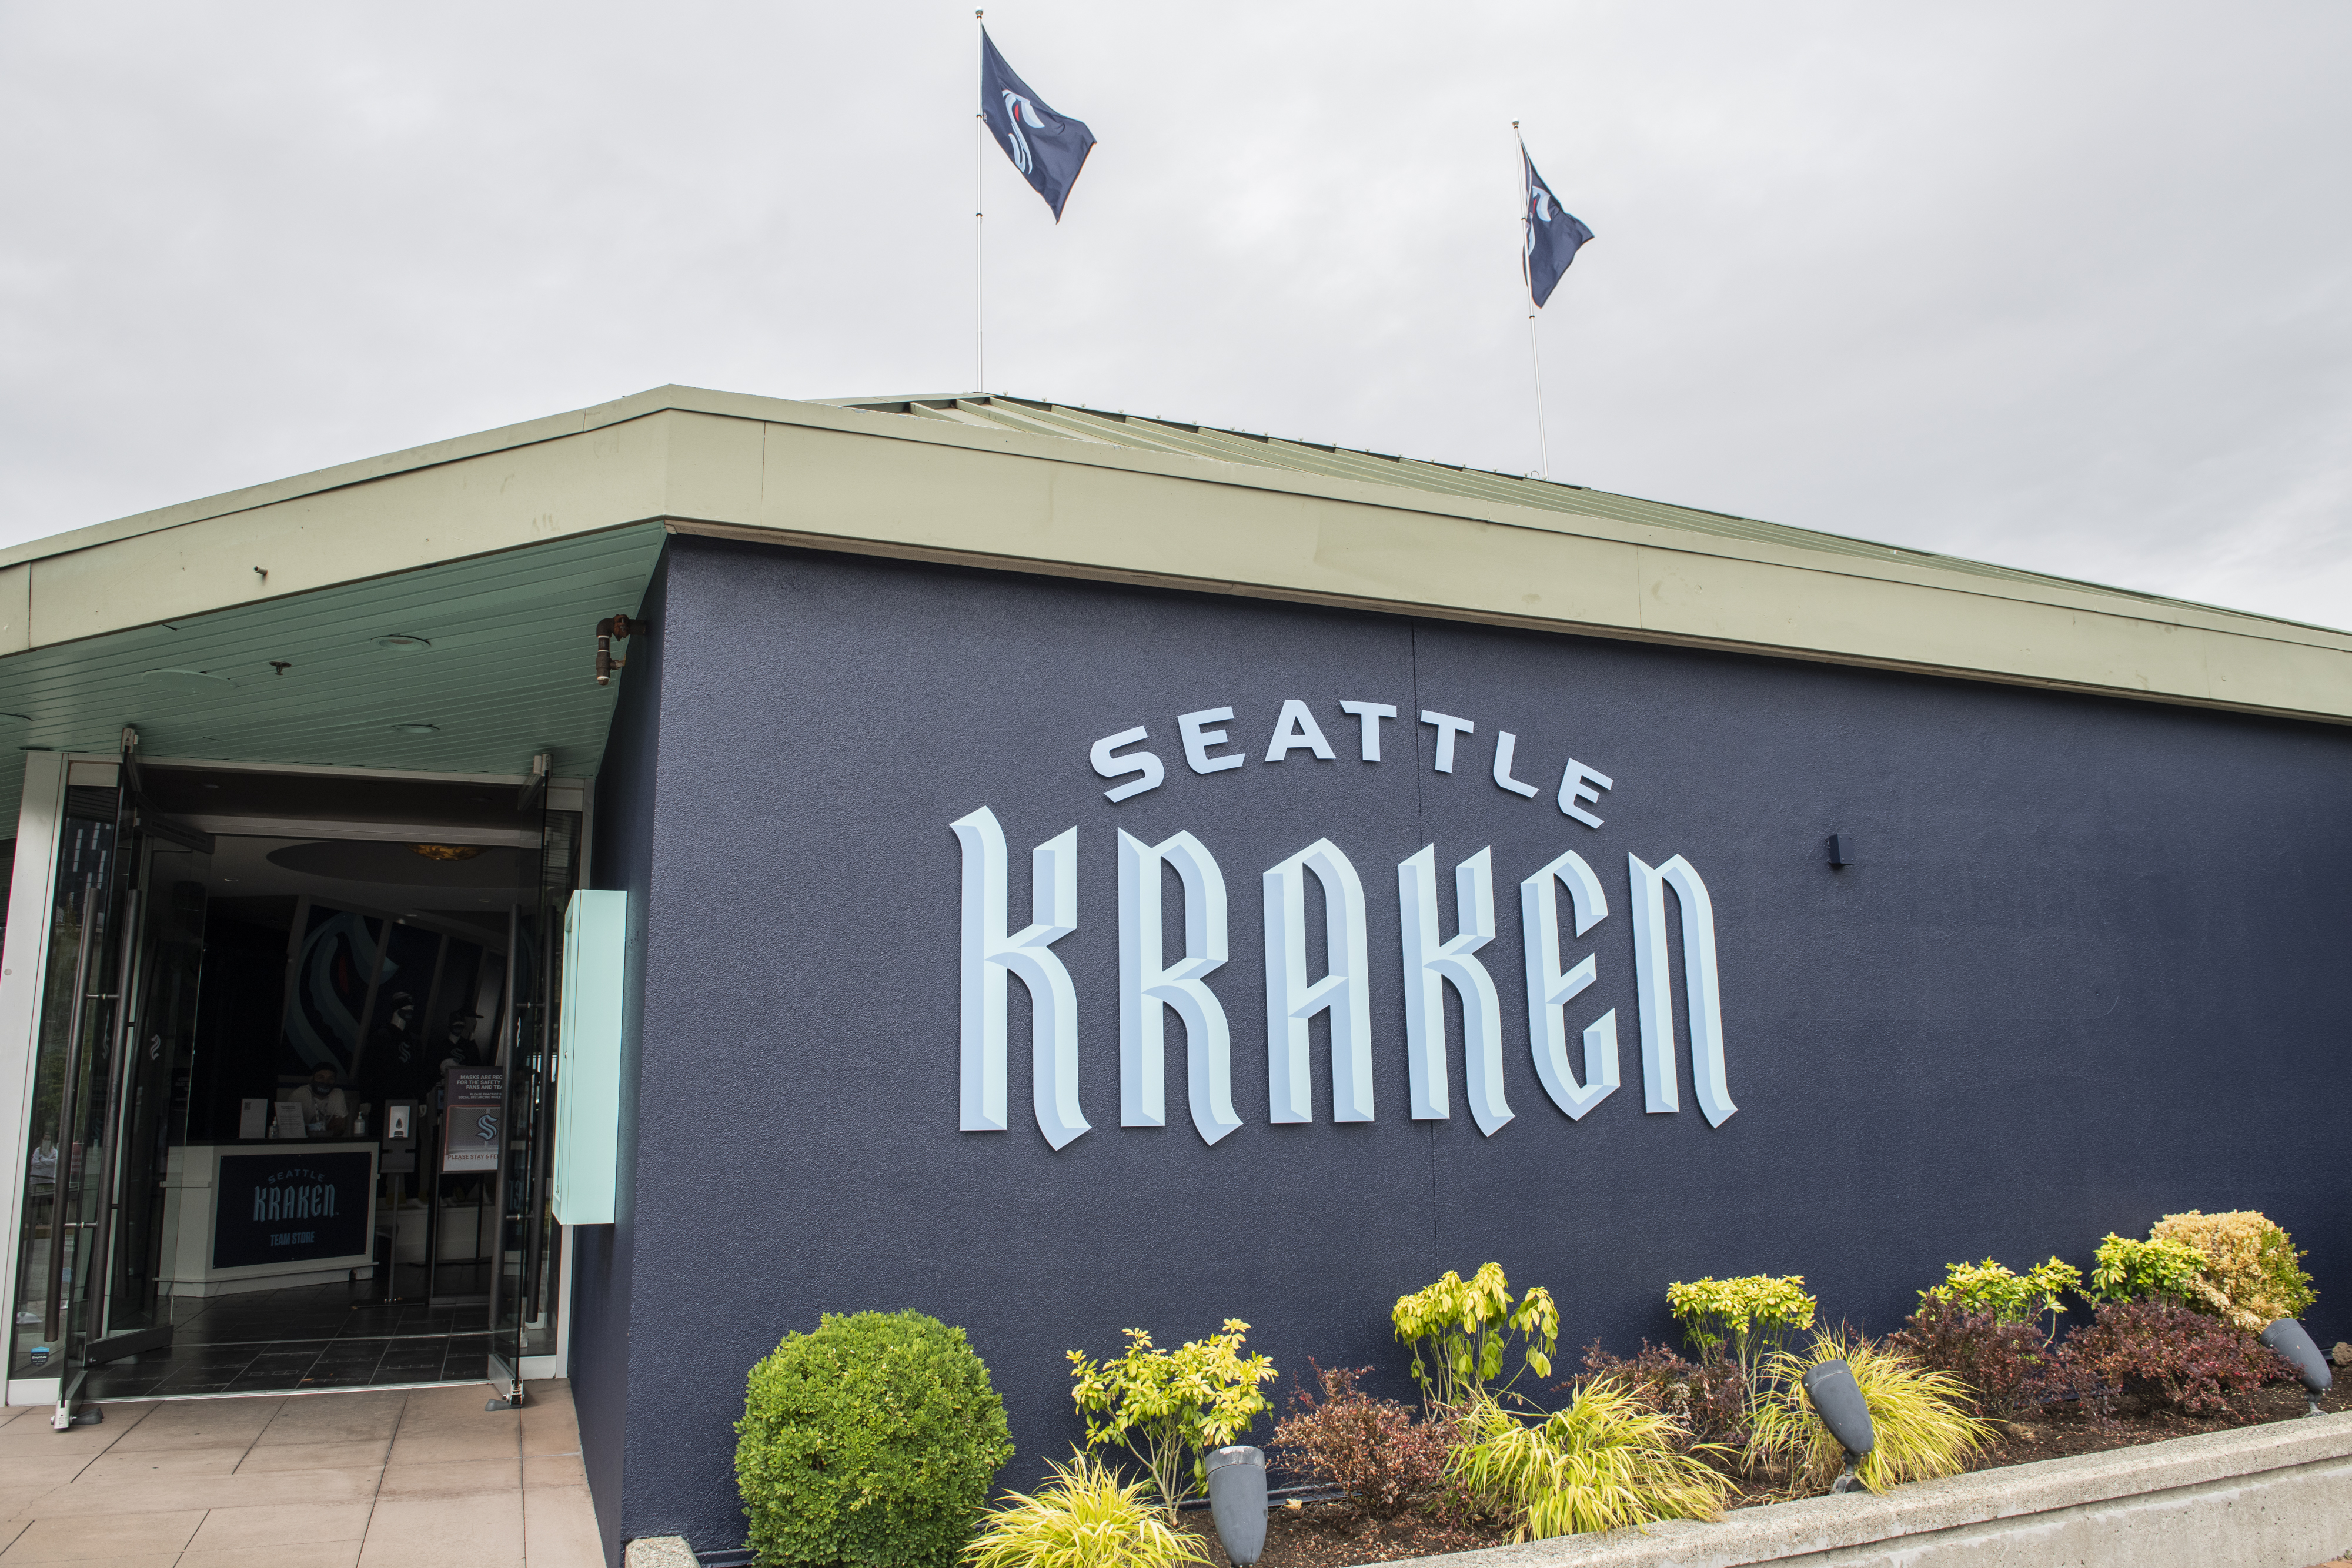 The Team Store for the Seattle Kraken, the NHL's newest franchise, opens for business on August 21, 2020 in Seattle, Washington.